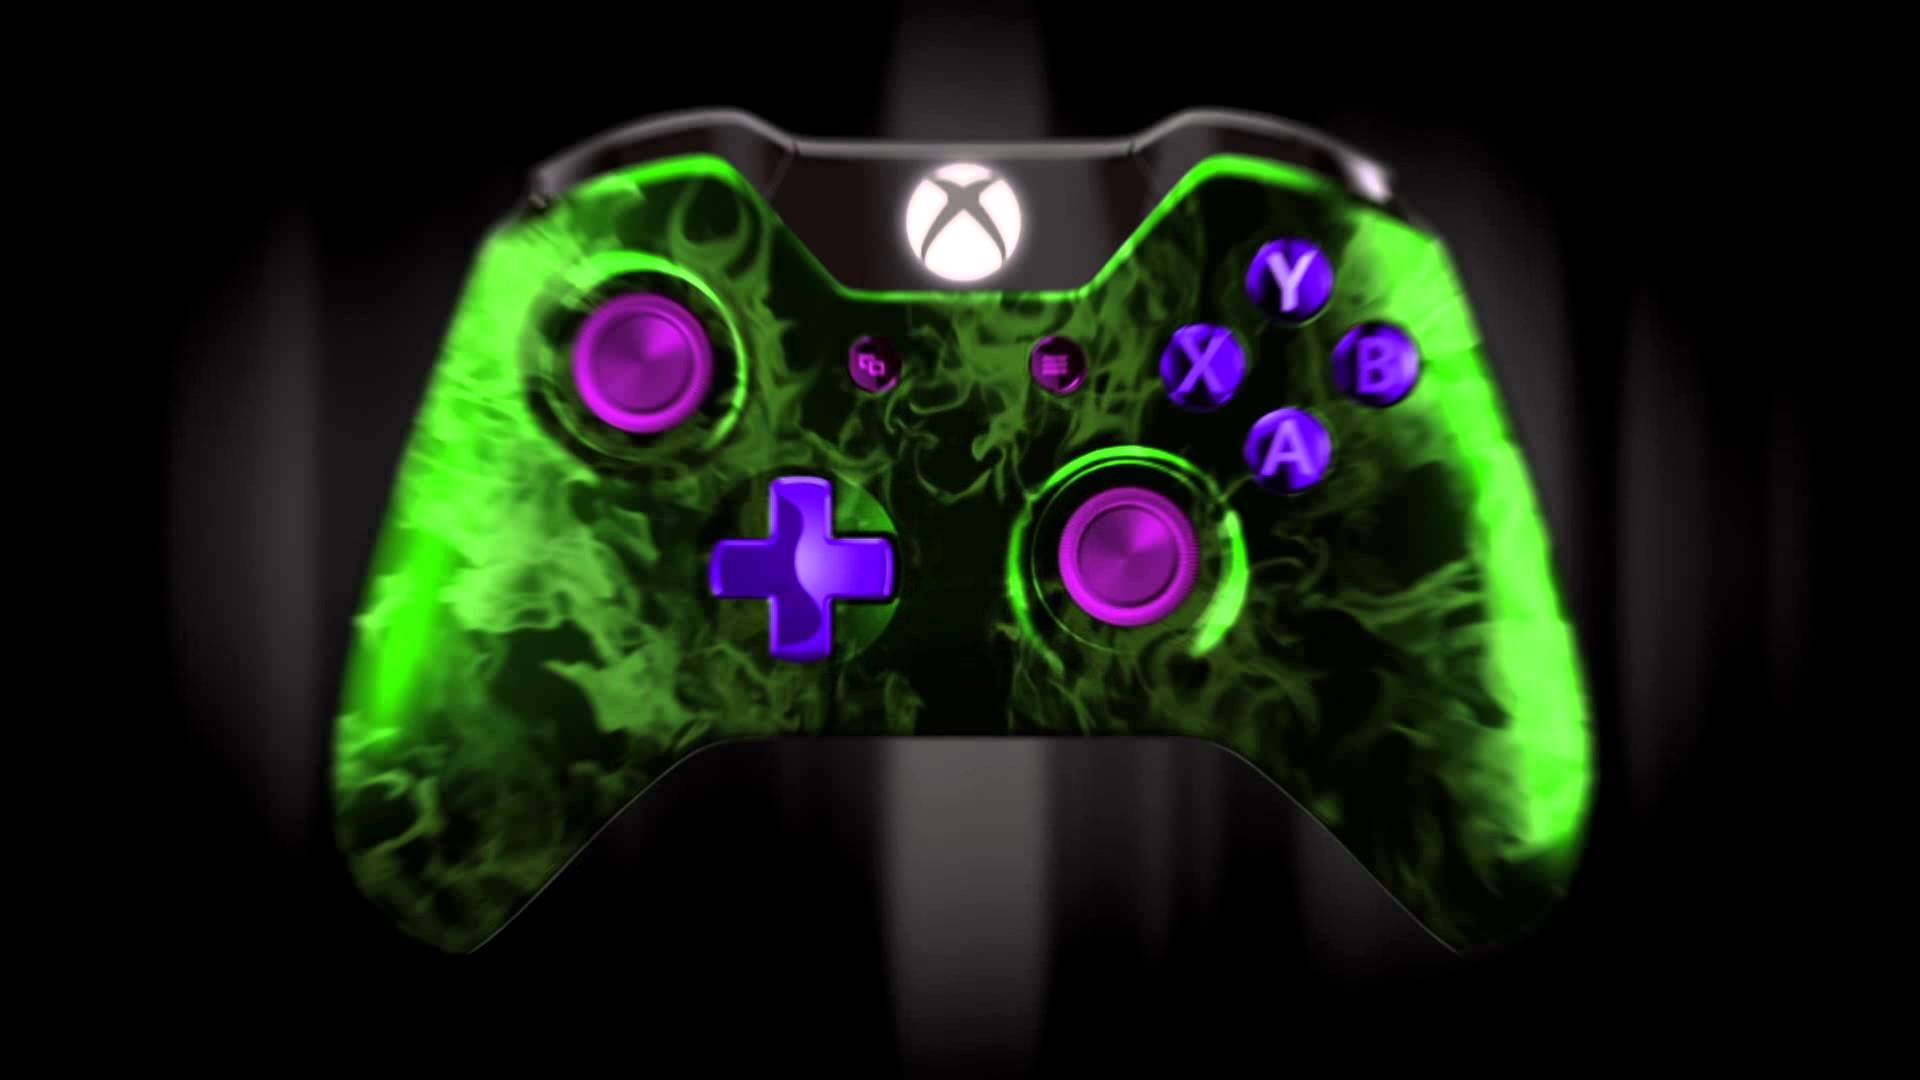 XBOX ONE video game system microsoft wallpaper | 1920x1080 | 392073 ...